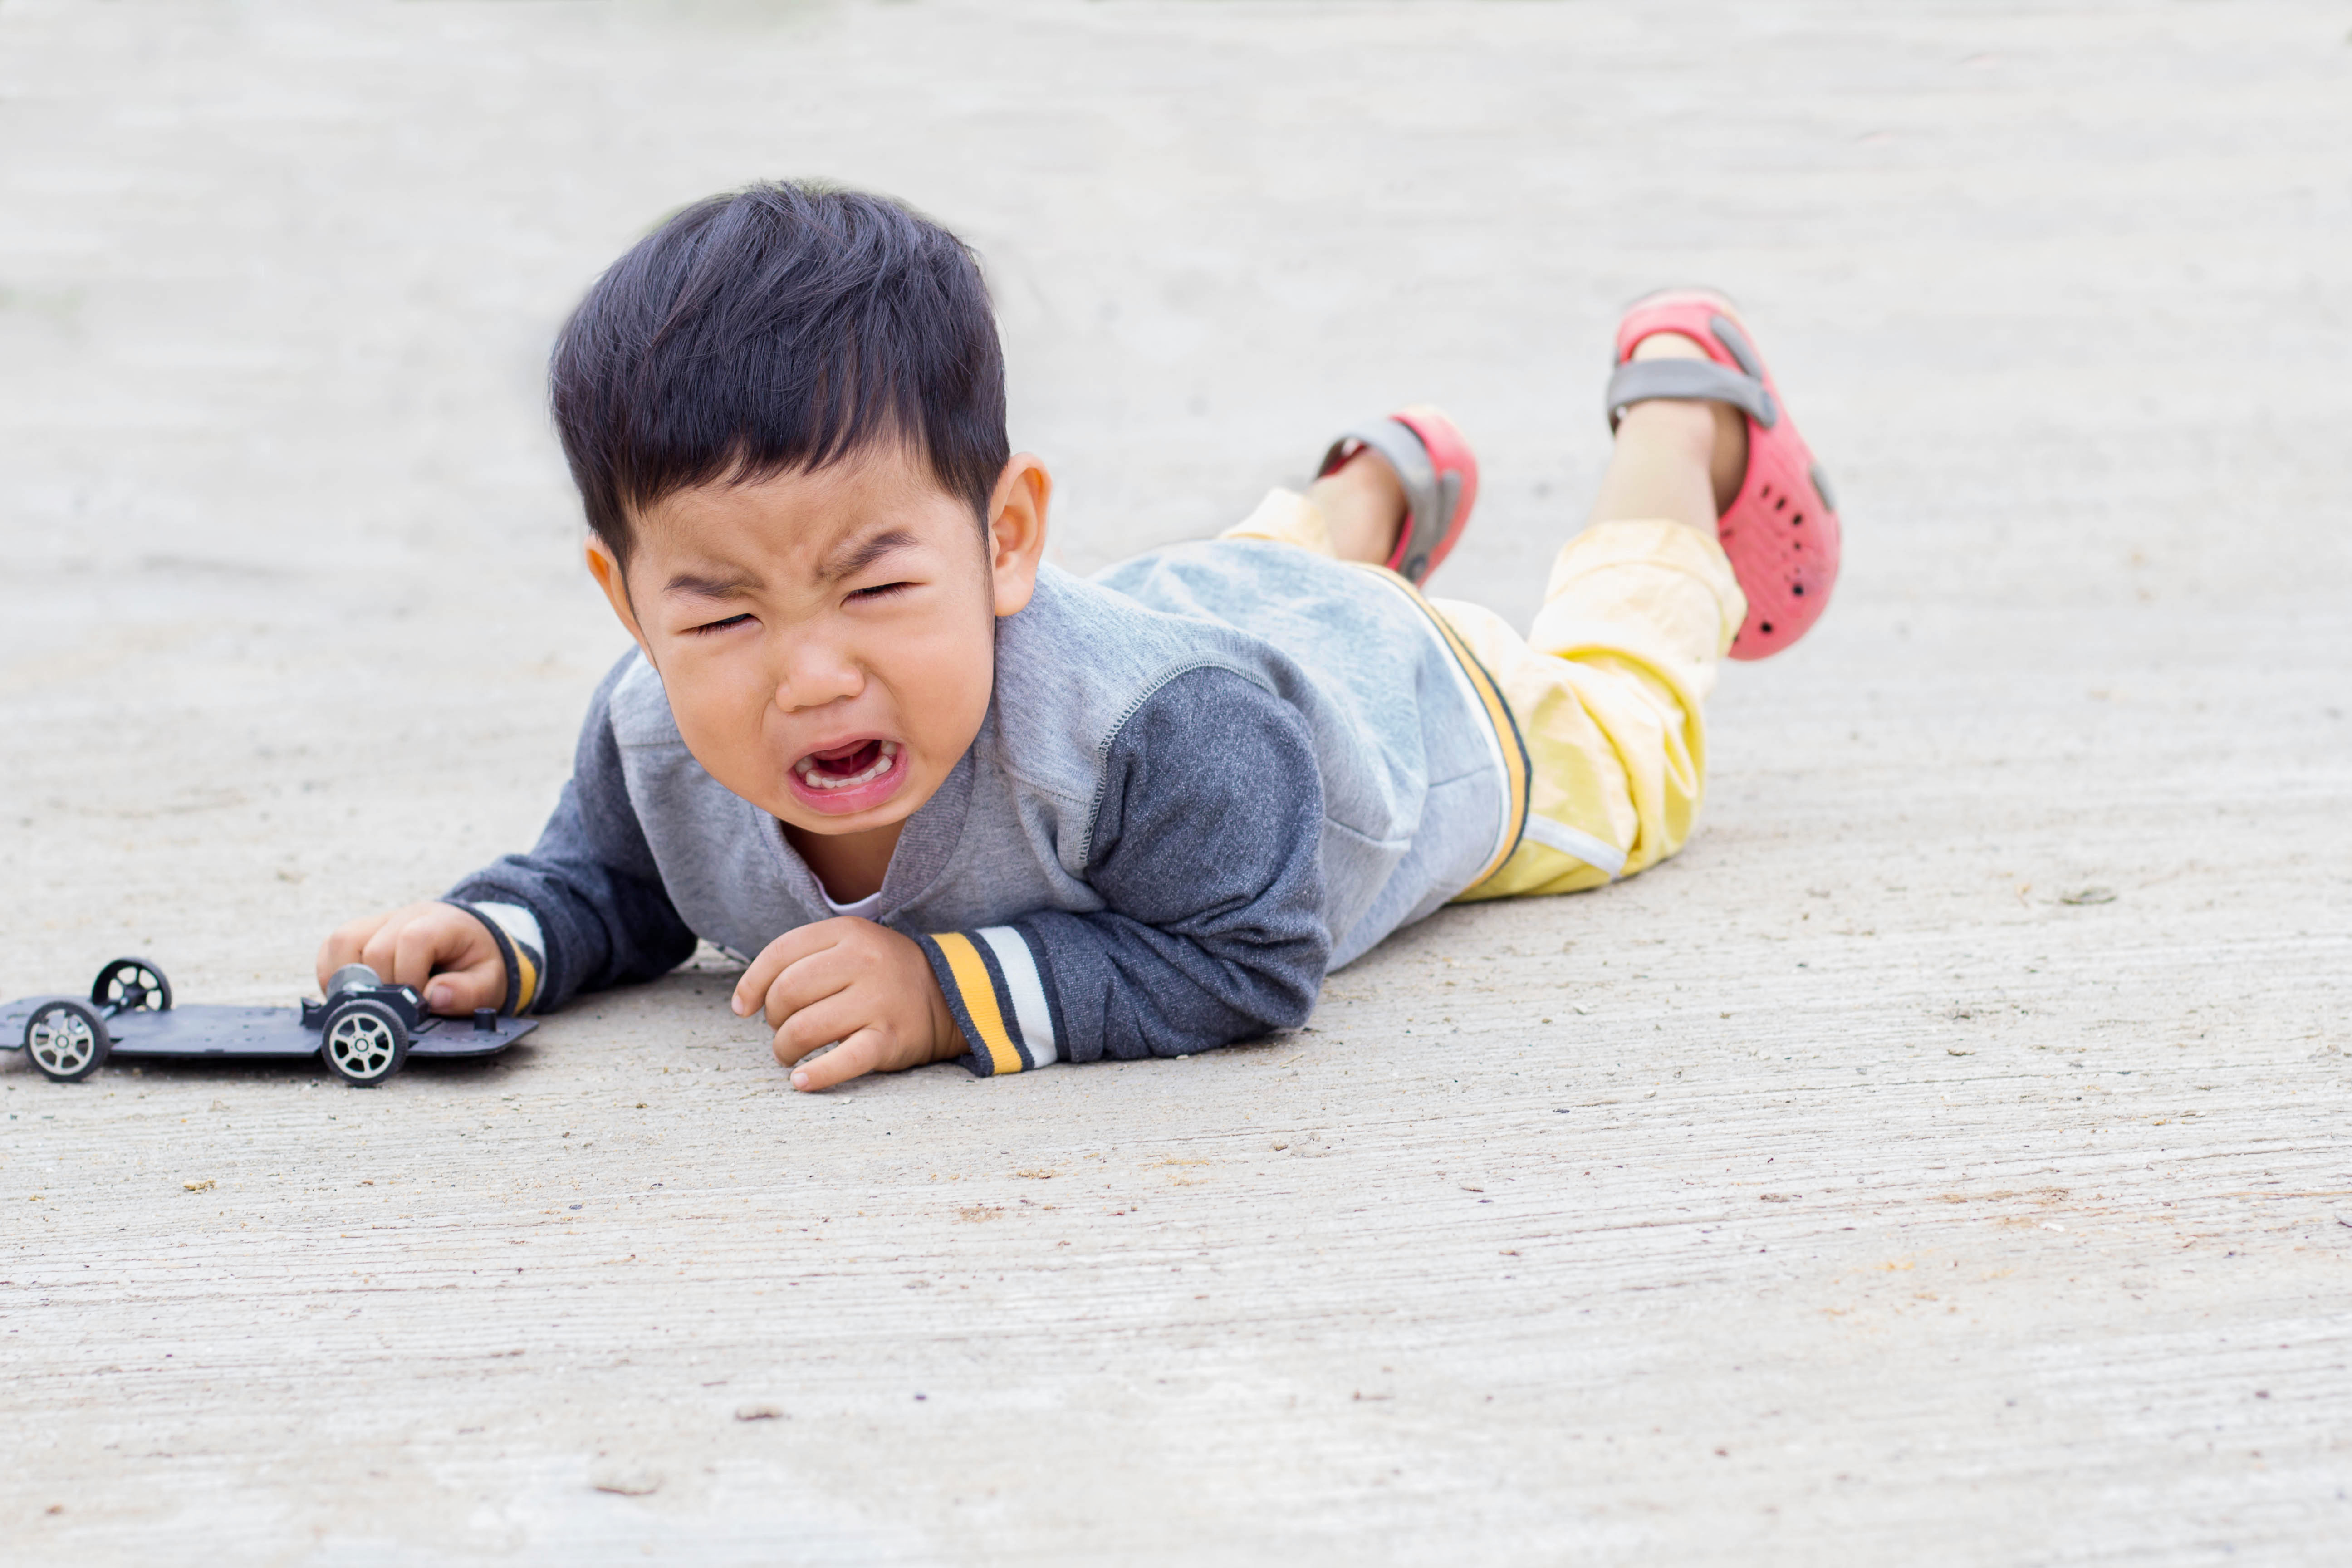 Injuries in young children are caused by falls while learning to walk or during play